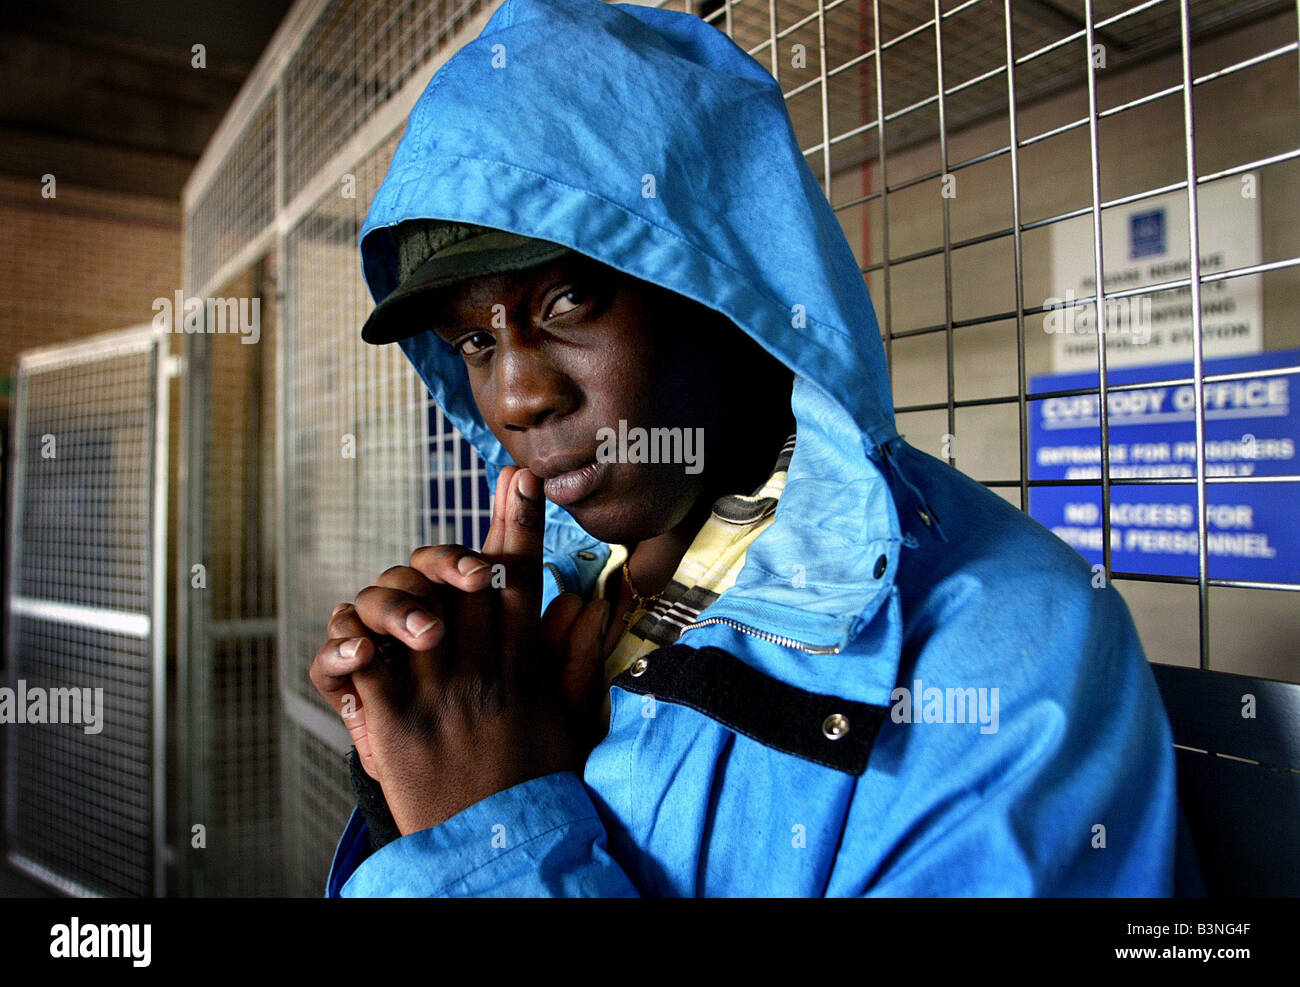 Actor Ofo Uhiara on the set of the Bill at Thames TV studios - Stock Image